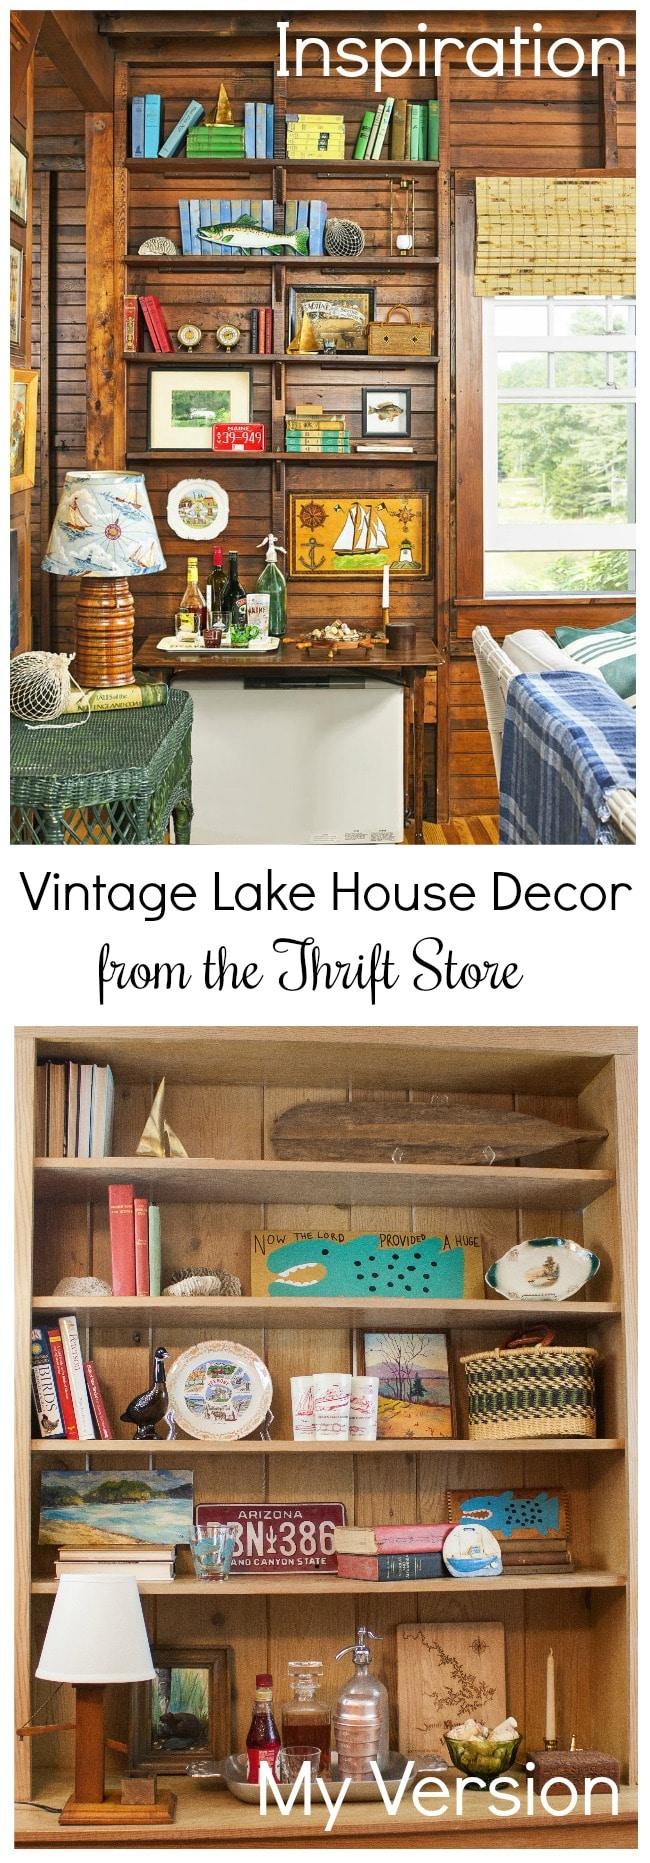 Vintage Lake House Decor from the Thrift Store - Learn how to shop thrift stores to get a desired look for less. #vintage #vintagedecor #thriftthelook